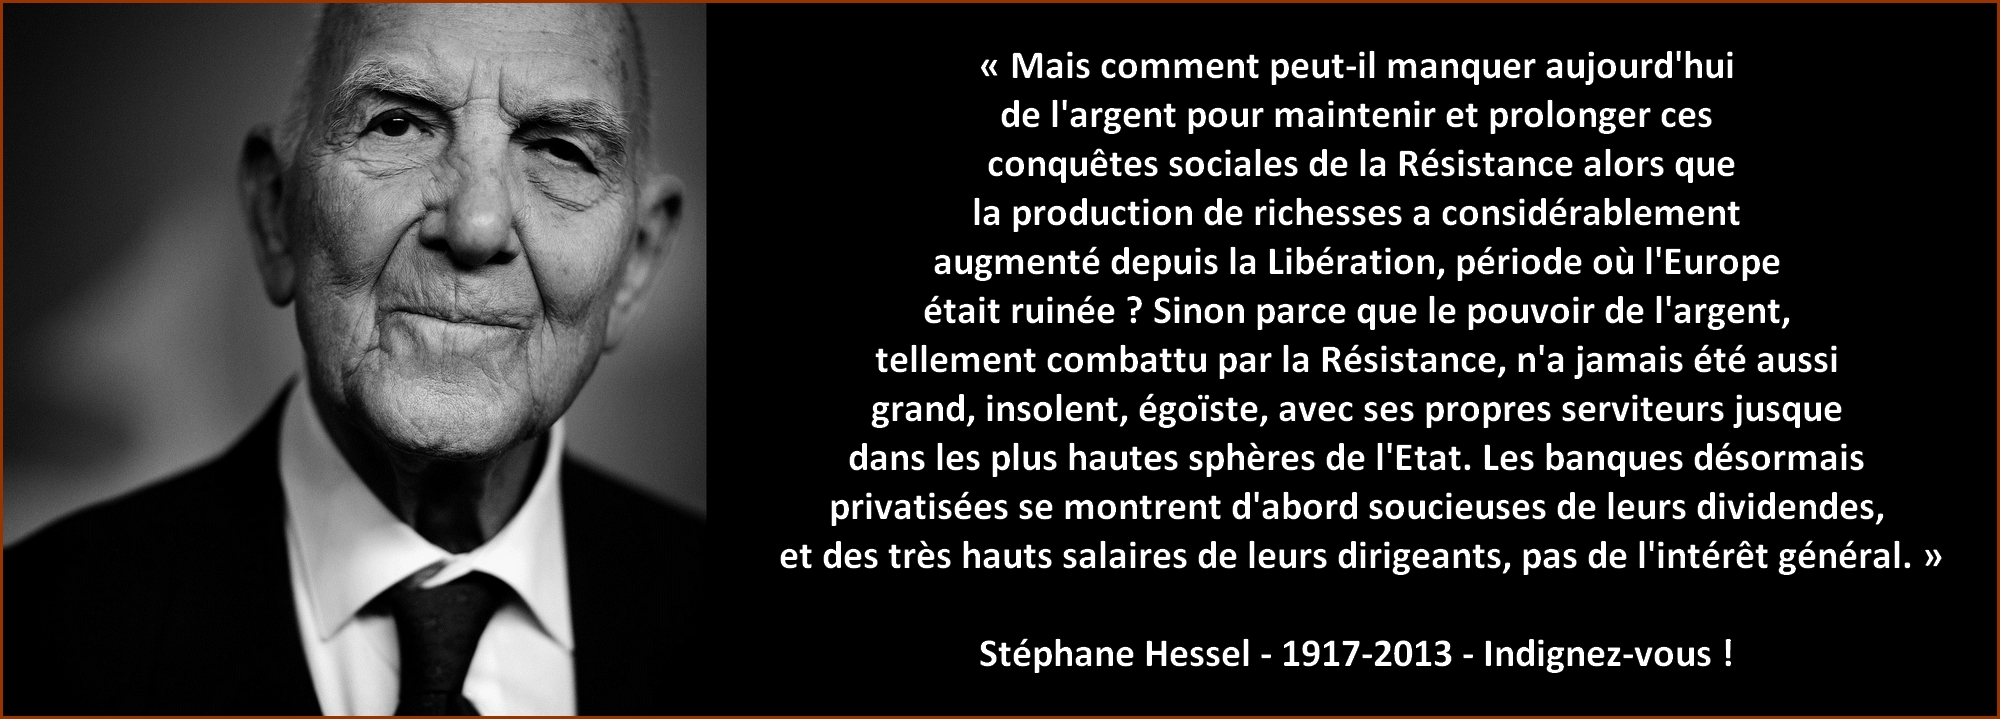 Stéphane Hessel - citation